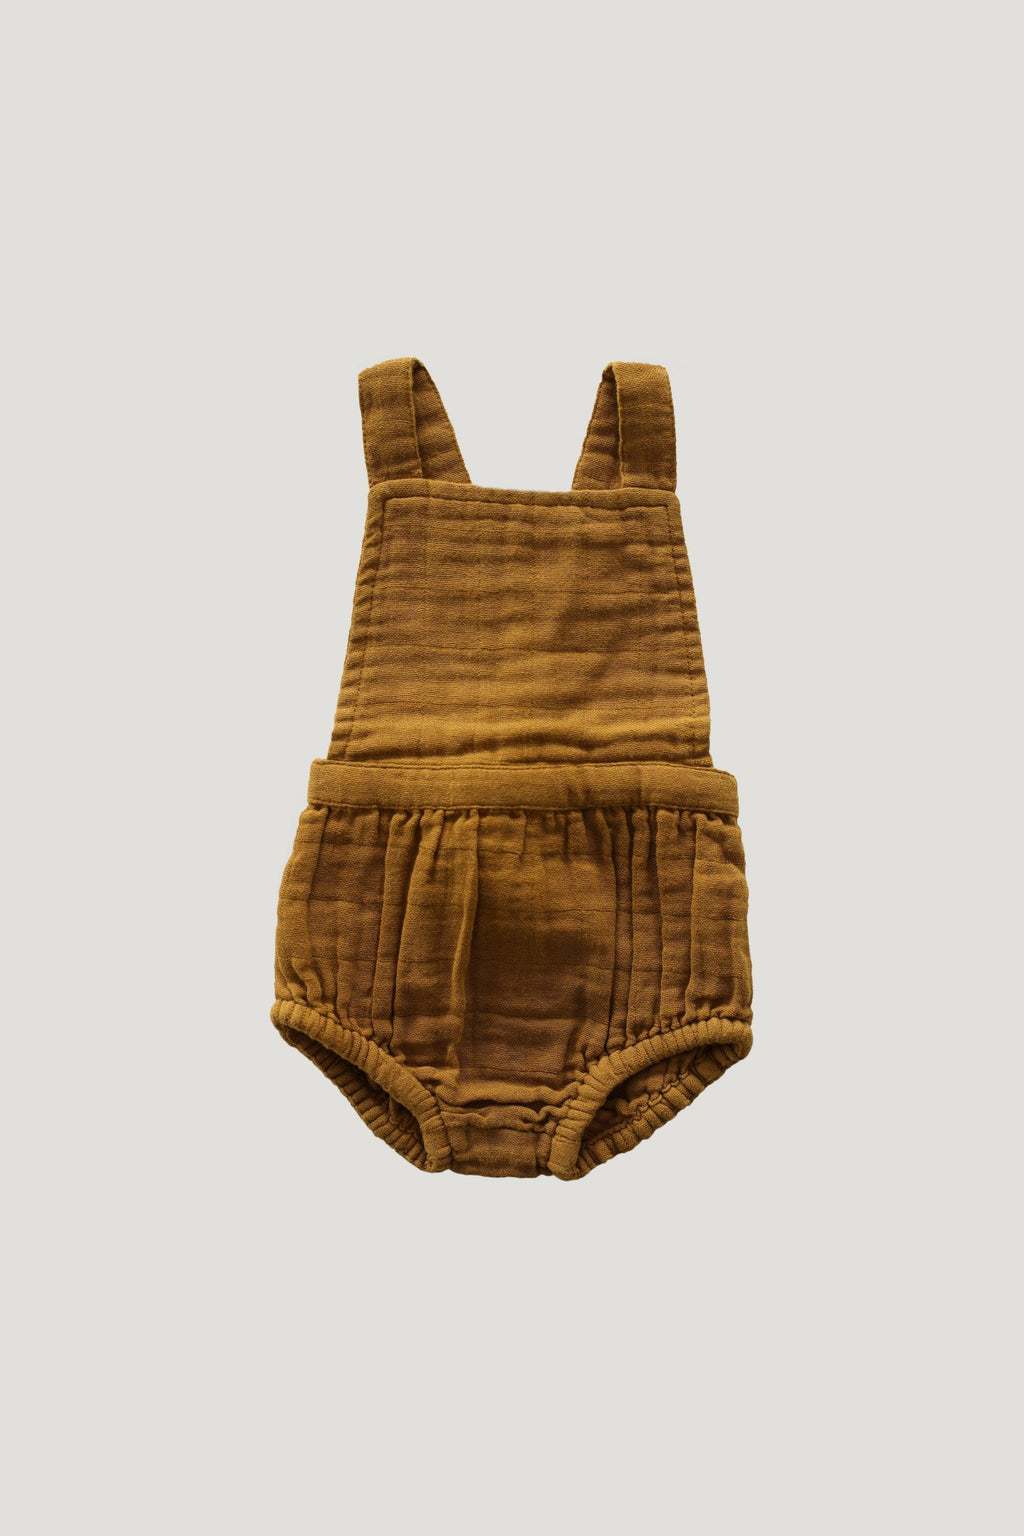 JAMIE KAY Billy romper- Golden